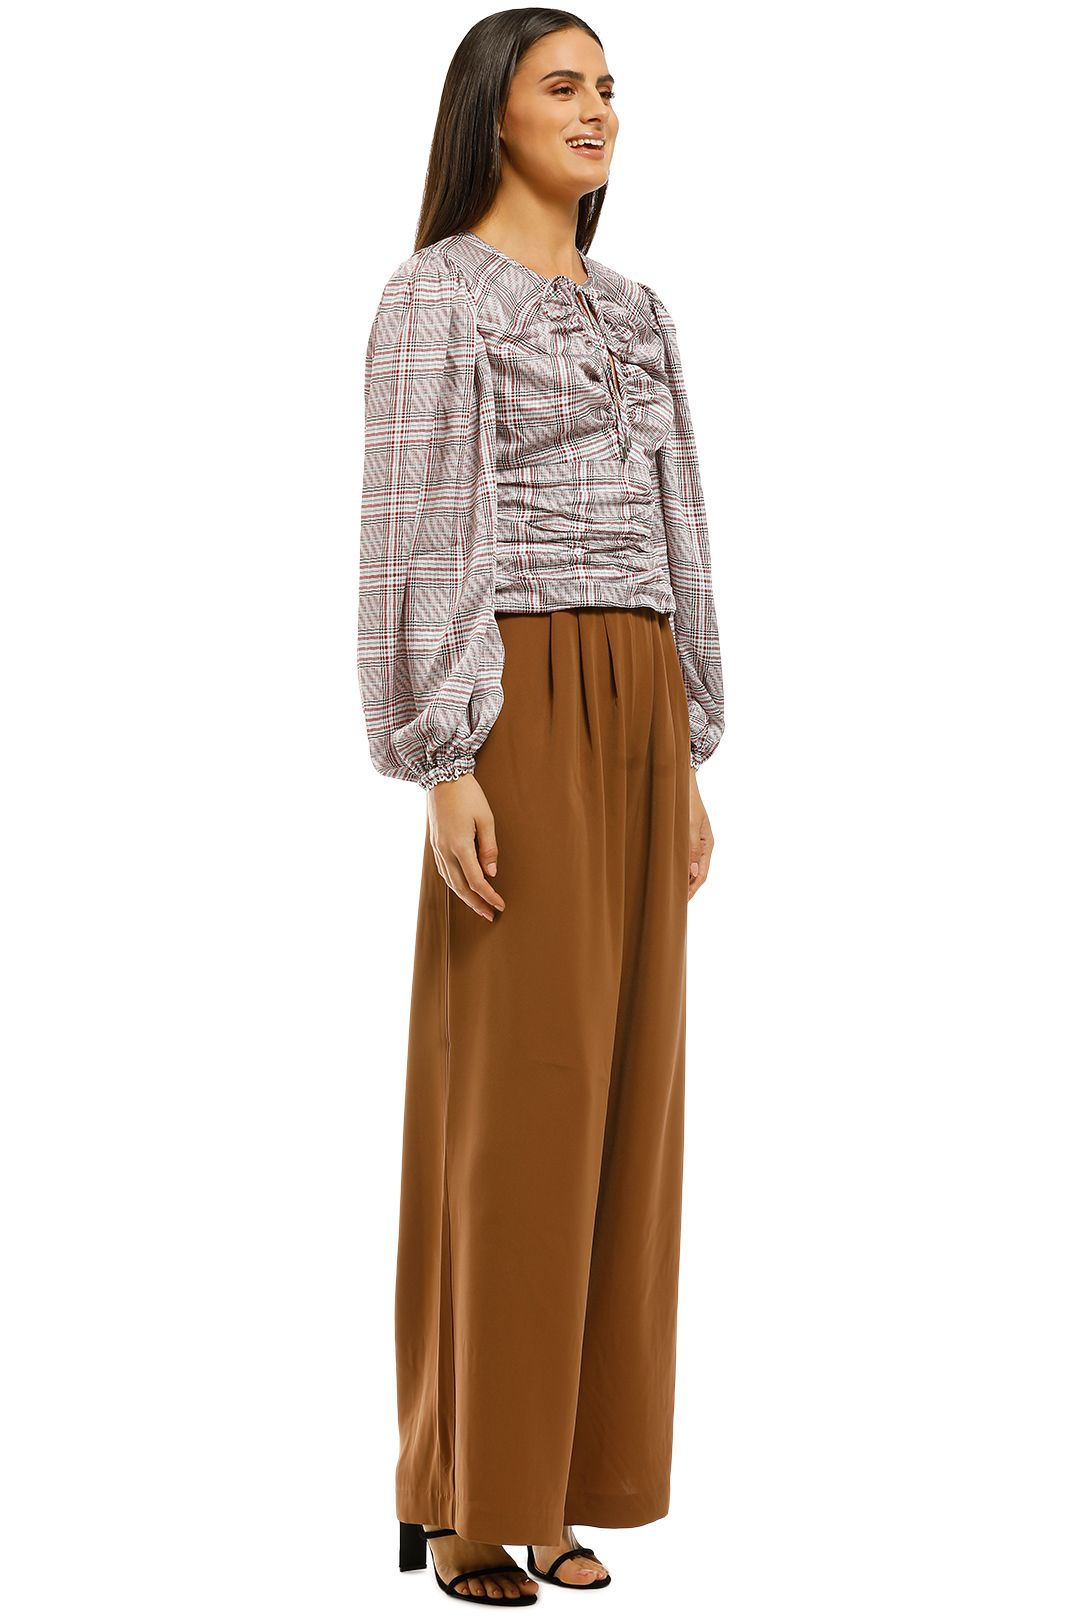 CMEO-Collective-No-Time-LS-Top-Plaid-Side